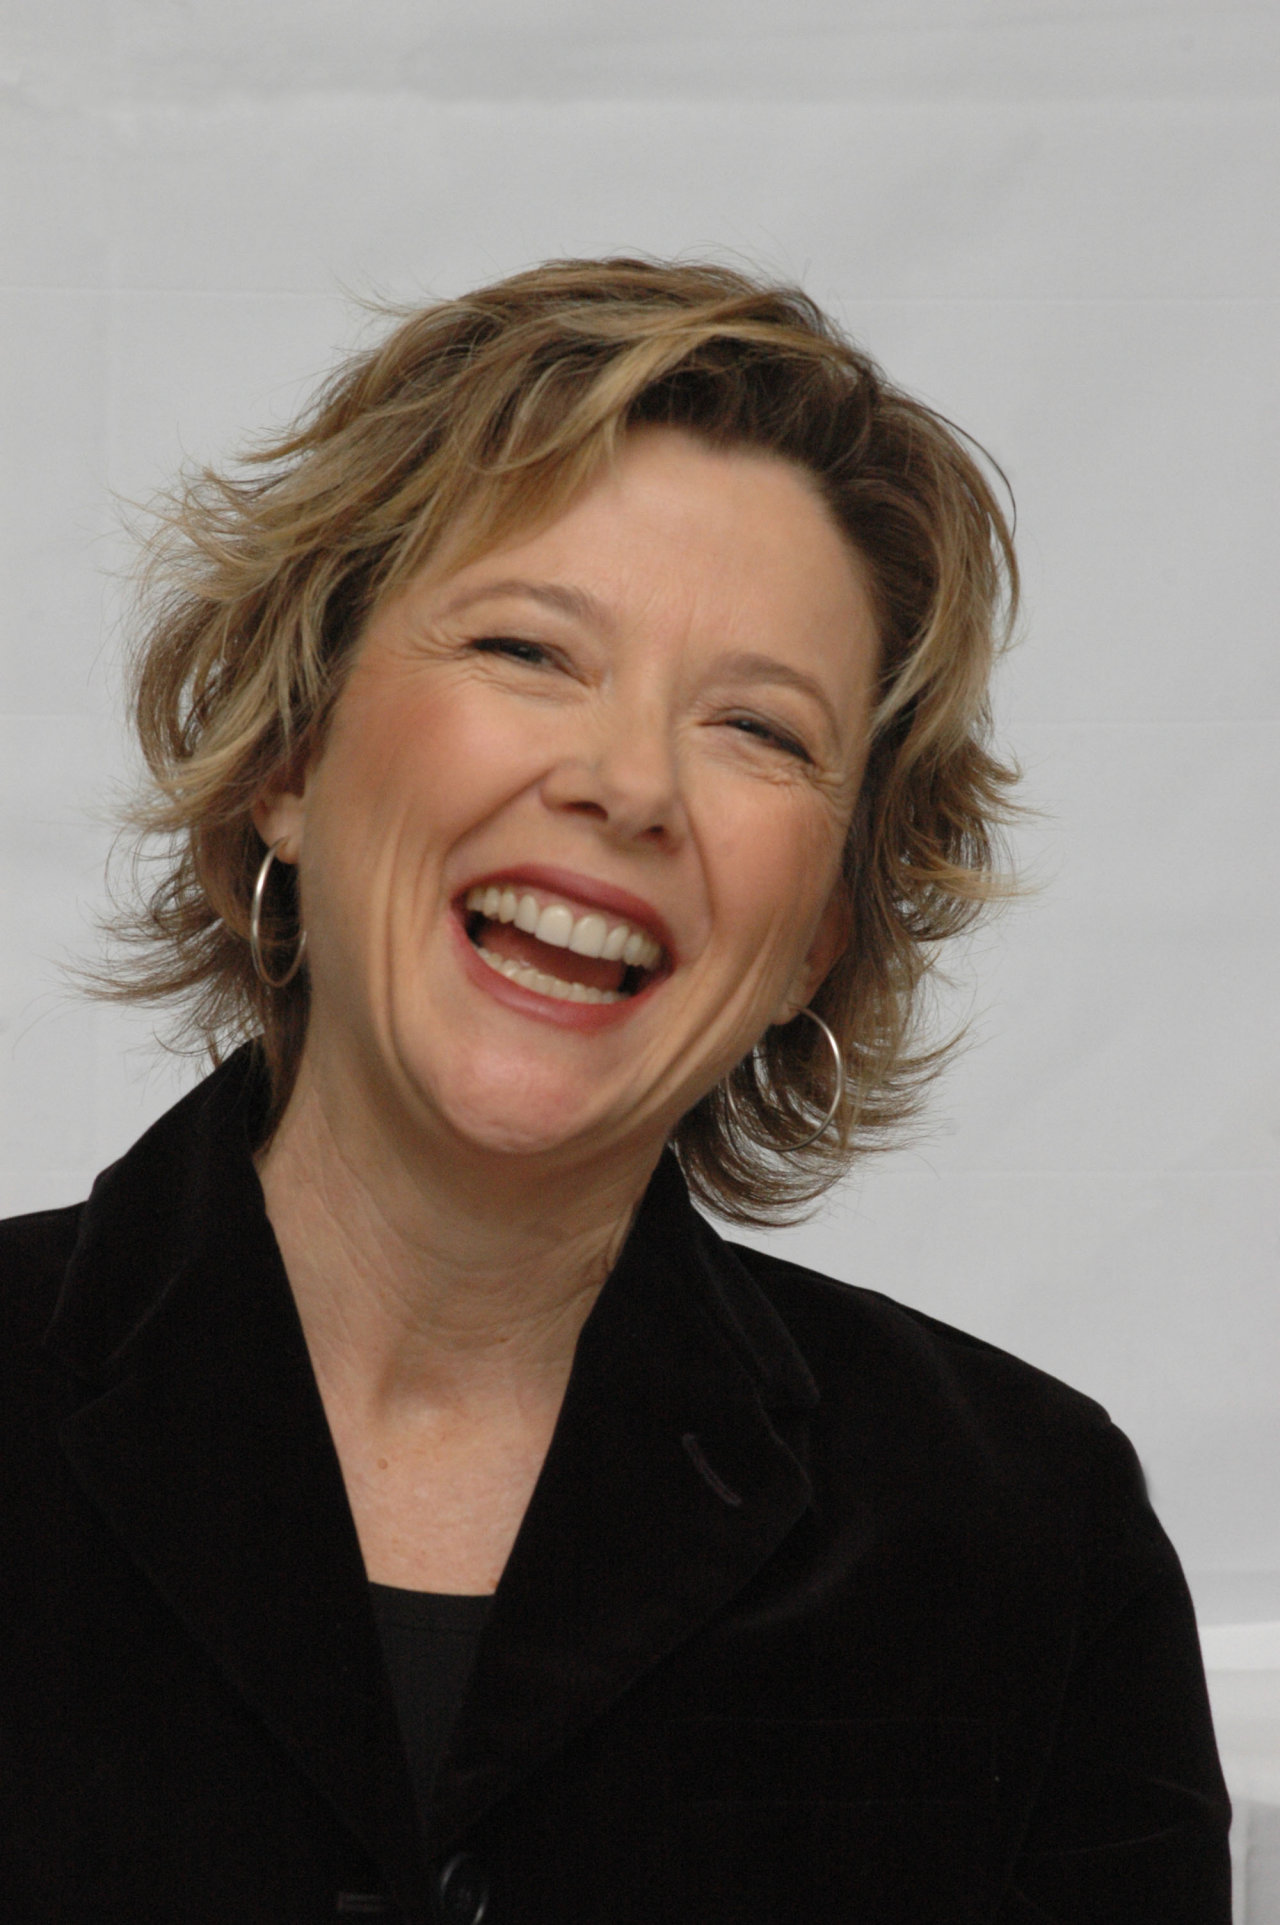 annette bening wallpaper - photo #5